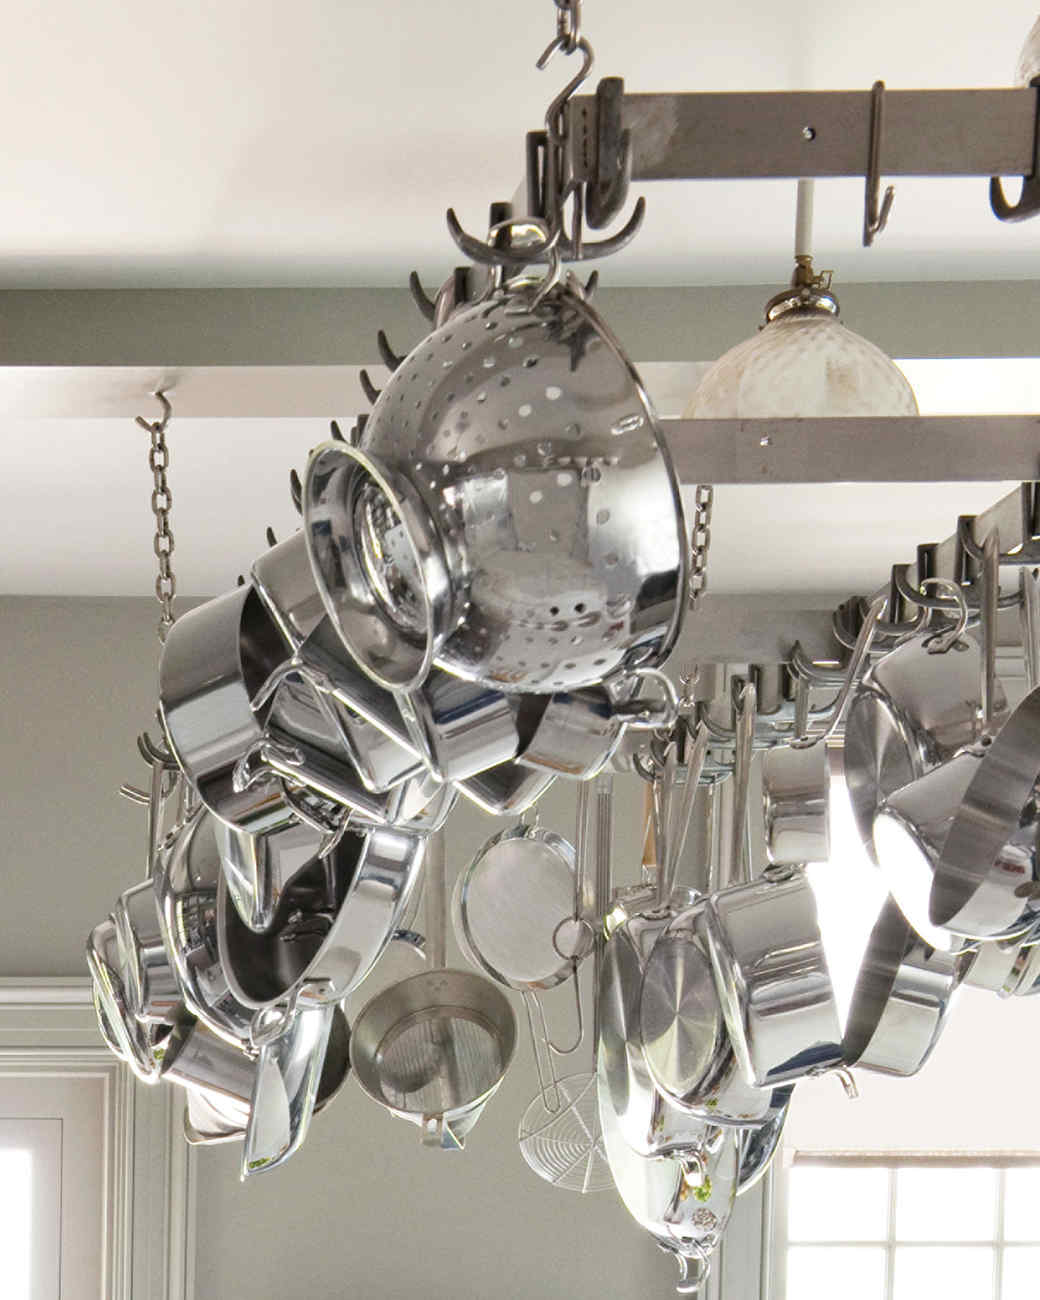 md106031_0910_kitchen_hanging_rack.jpg